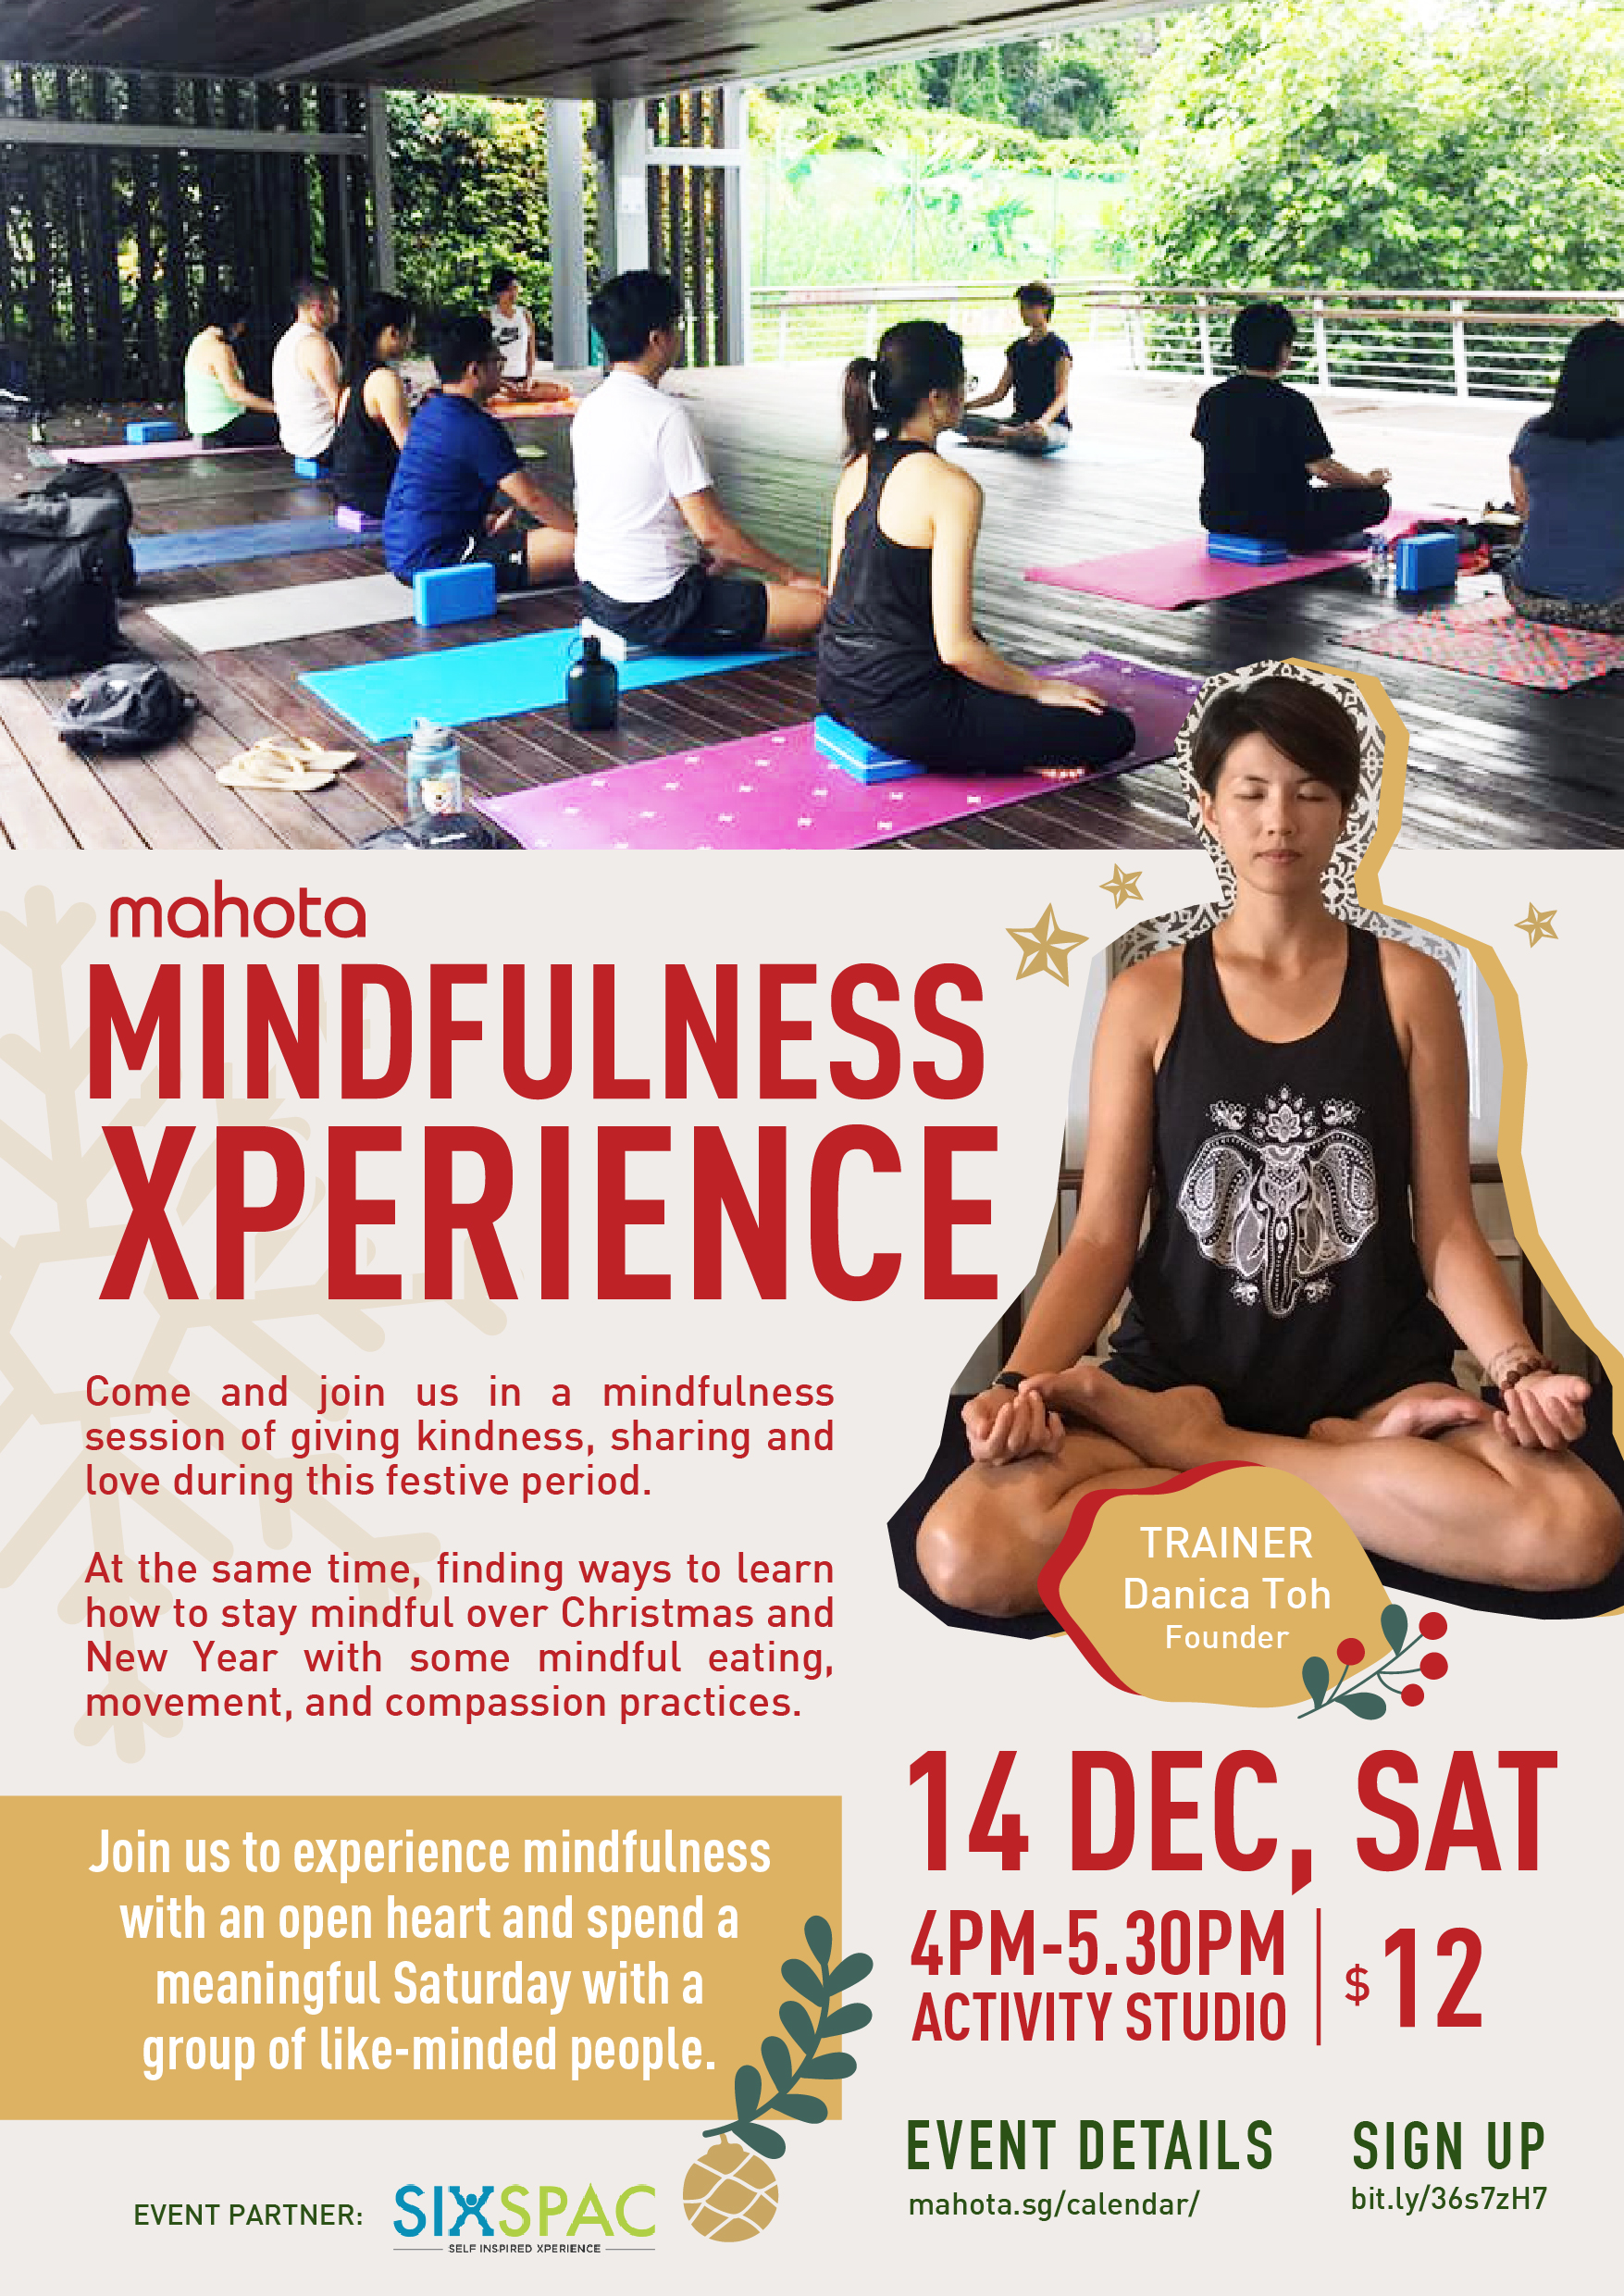 mindfulness-xperience-01